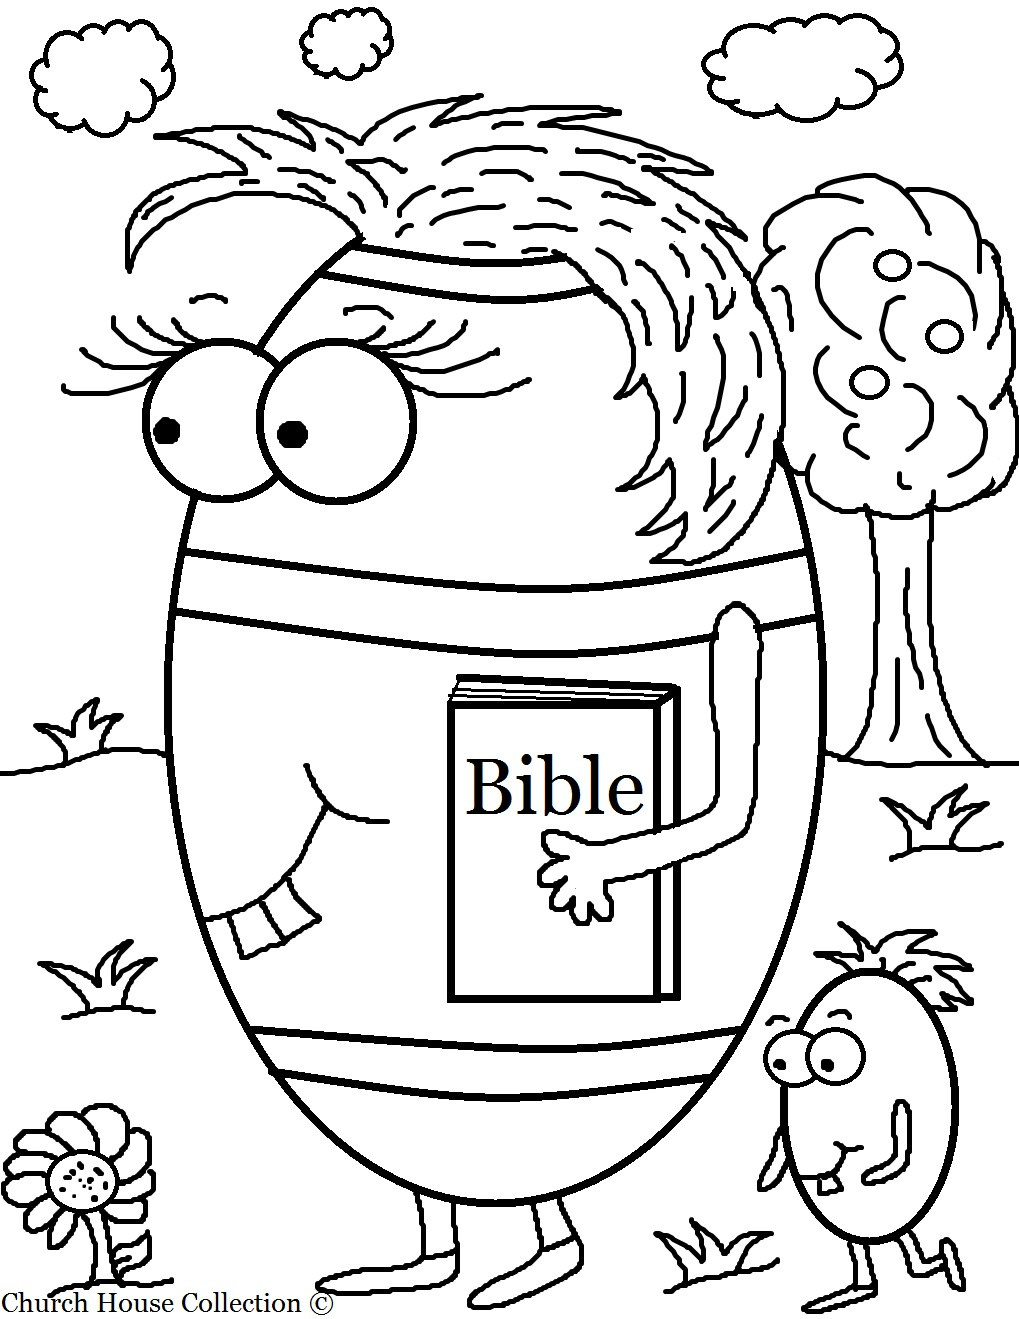 printable bible coloring pages - photo#16